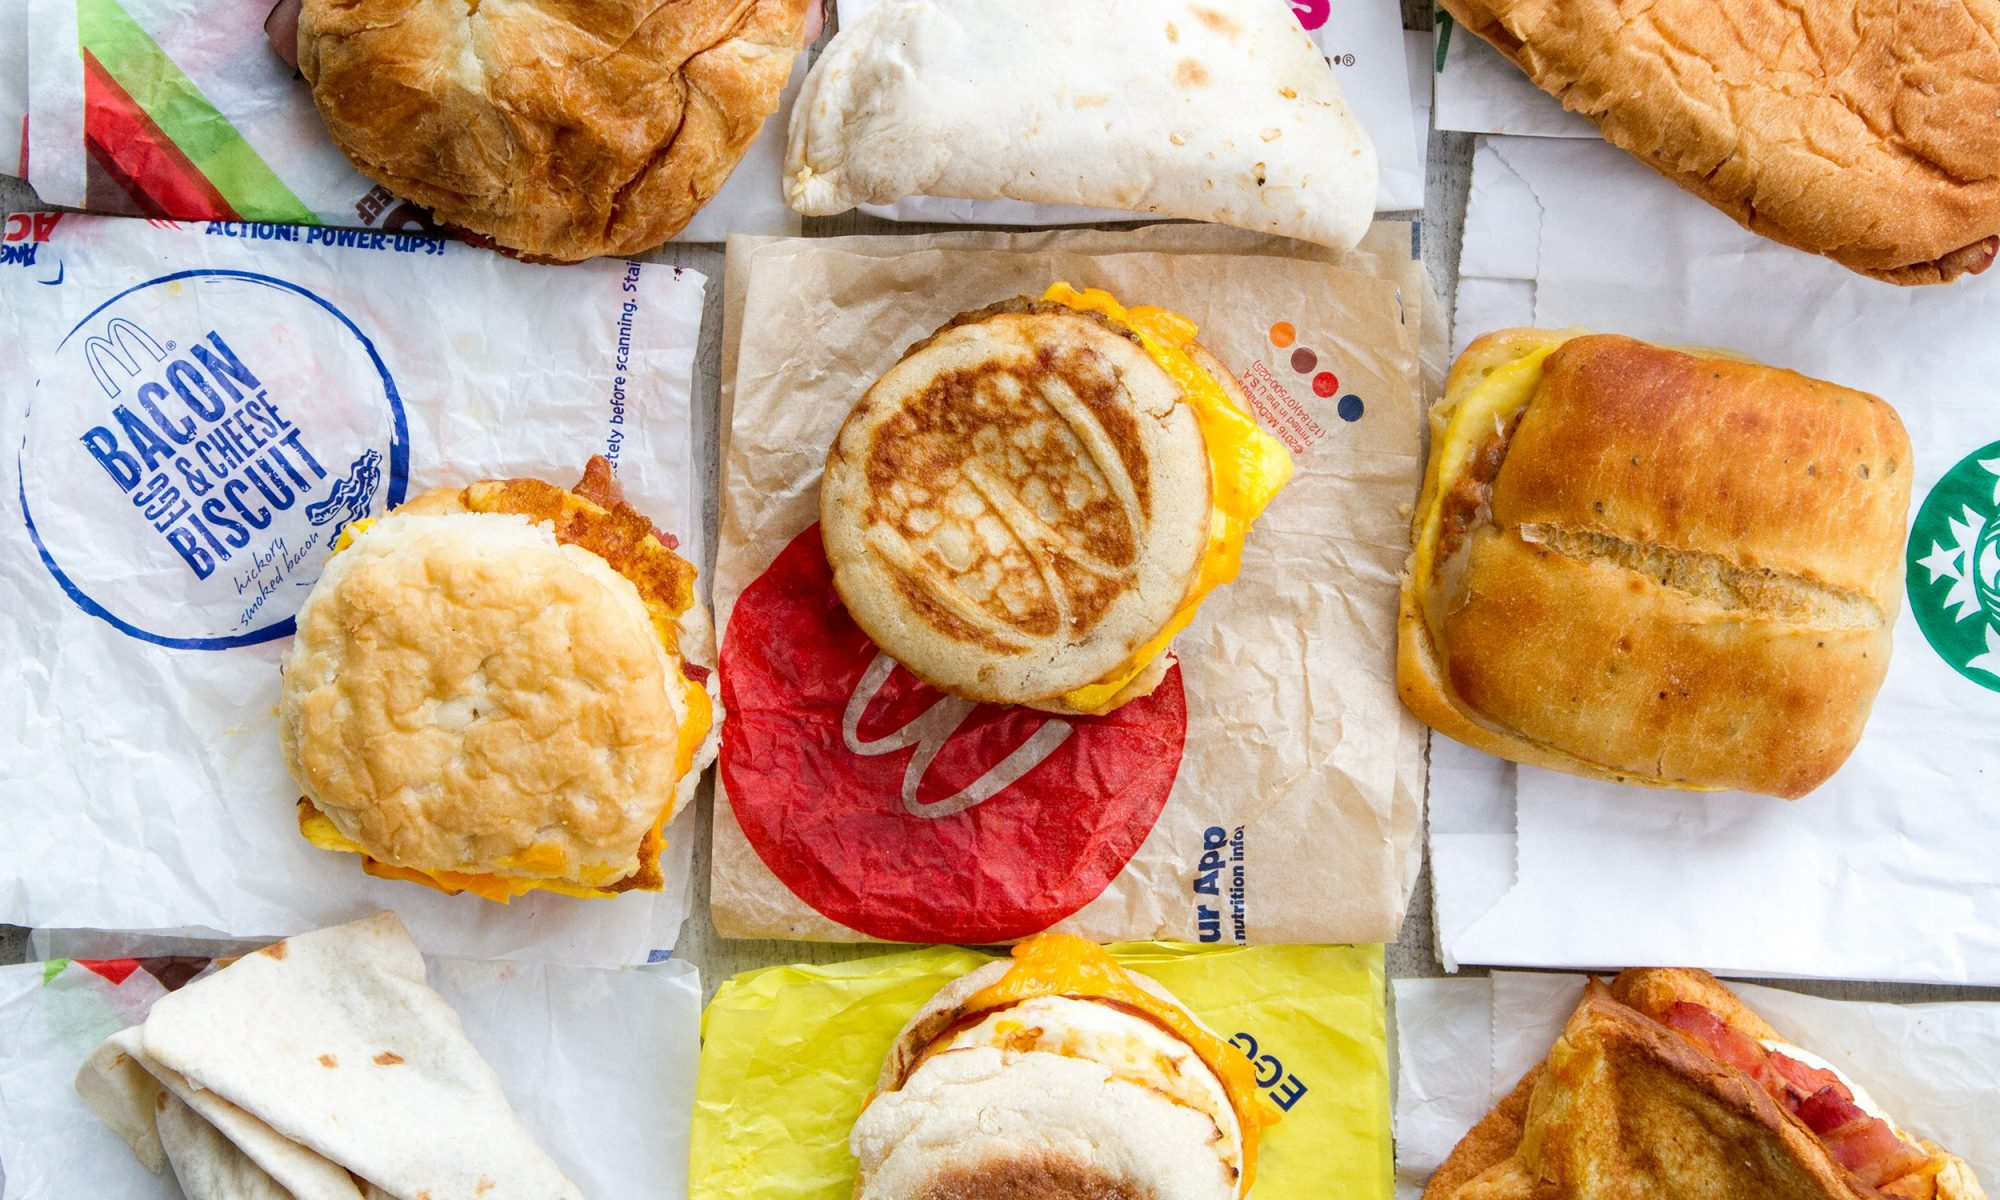 EC: I Ate 9 Fast Food Breakfast Sandwiches in One Day and Here's the Best One